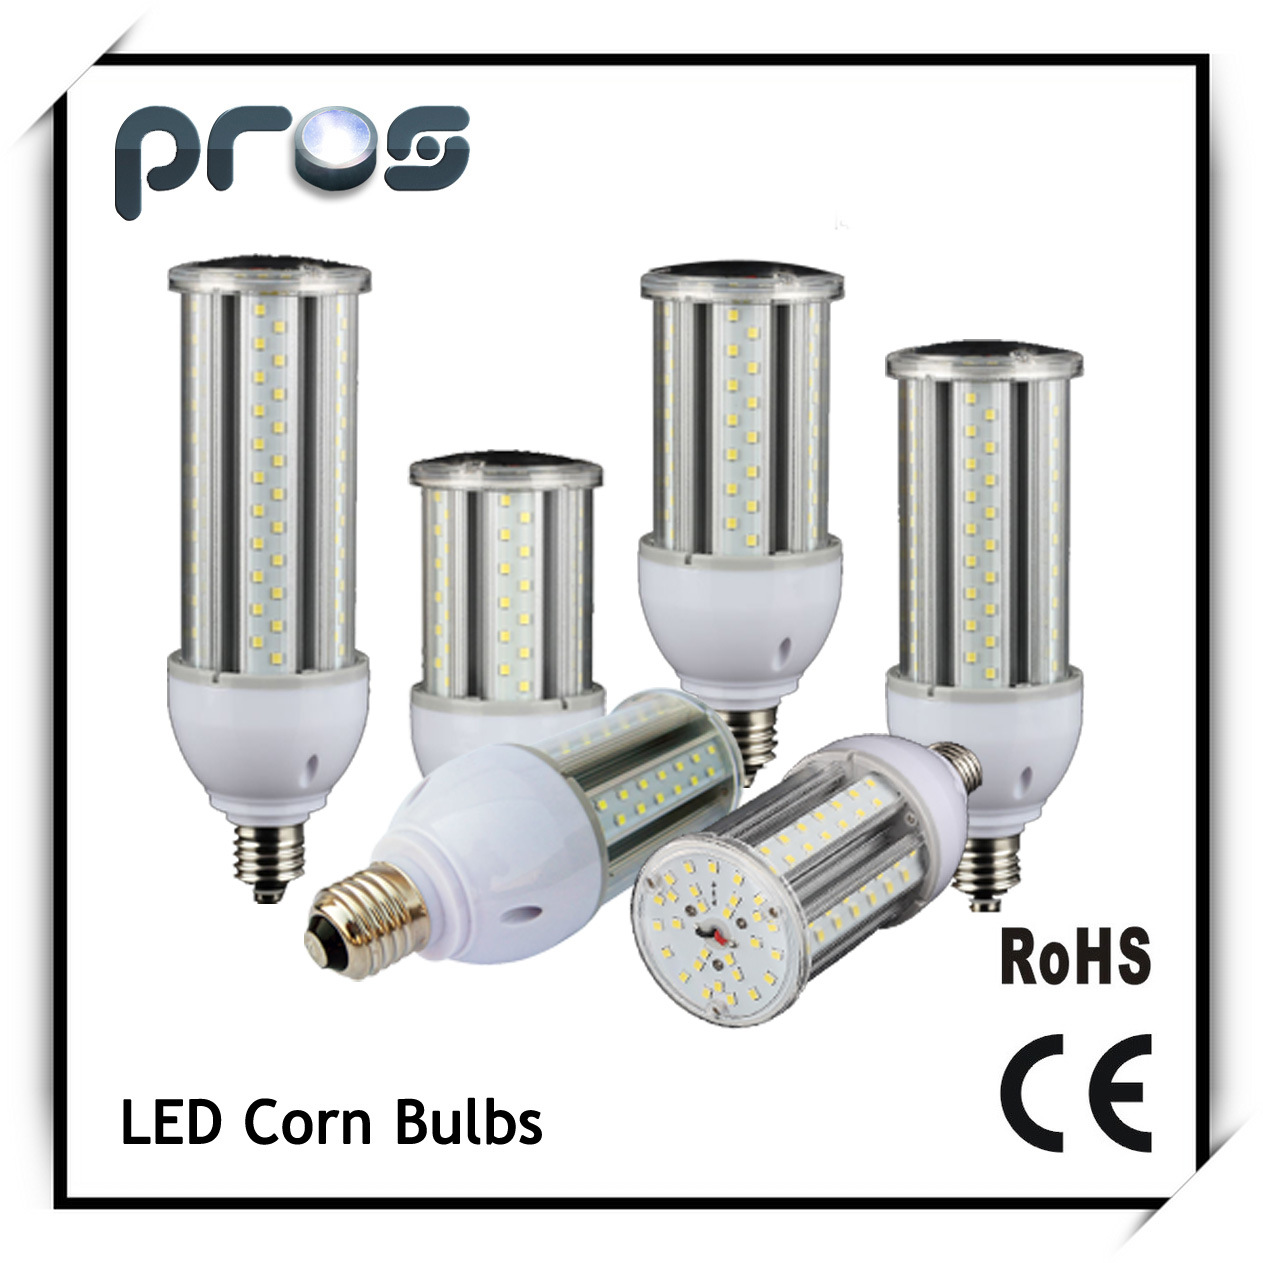 E27/E40 LED Corn Bulbs Light for Garden, Resident Lighting